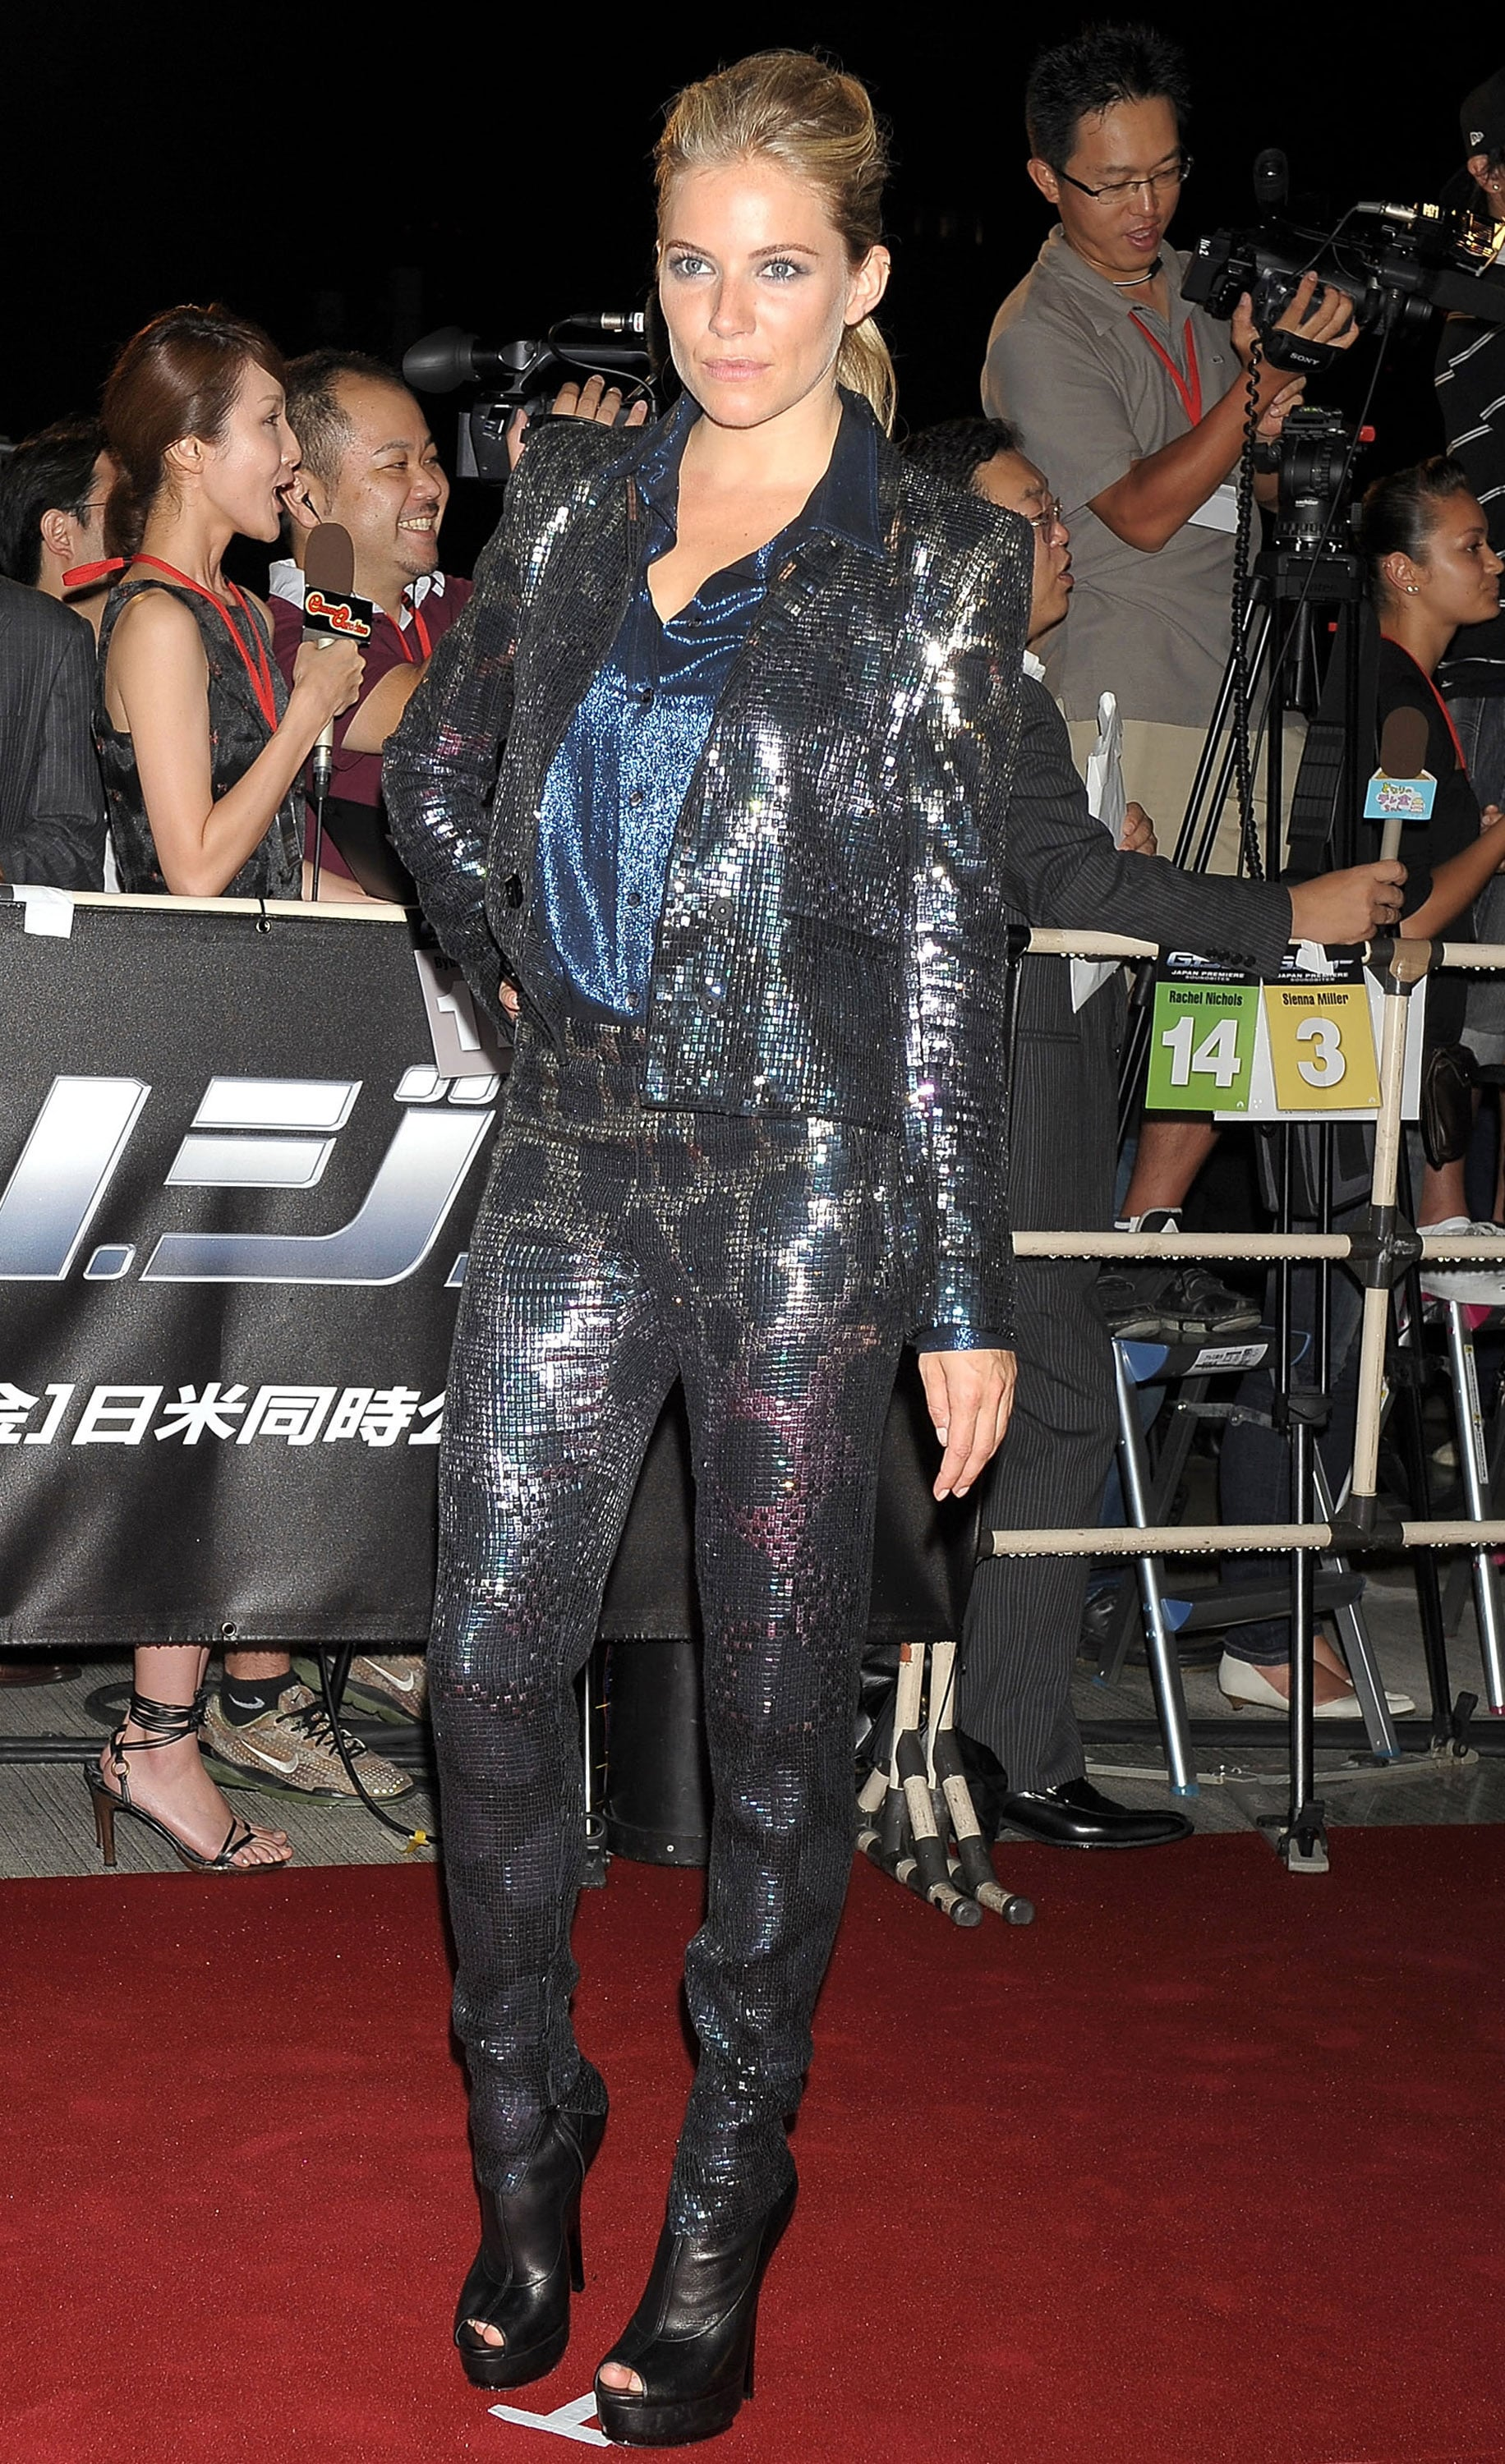 Sienna rocked a slick, sparkly suit for a film premiere in 2009.